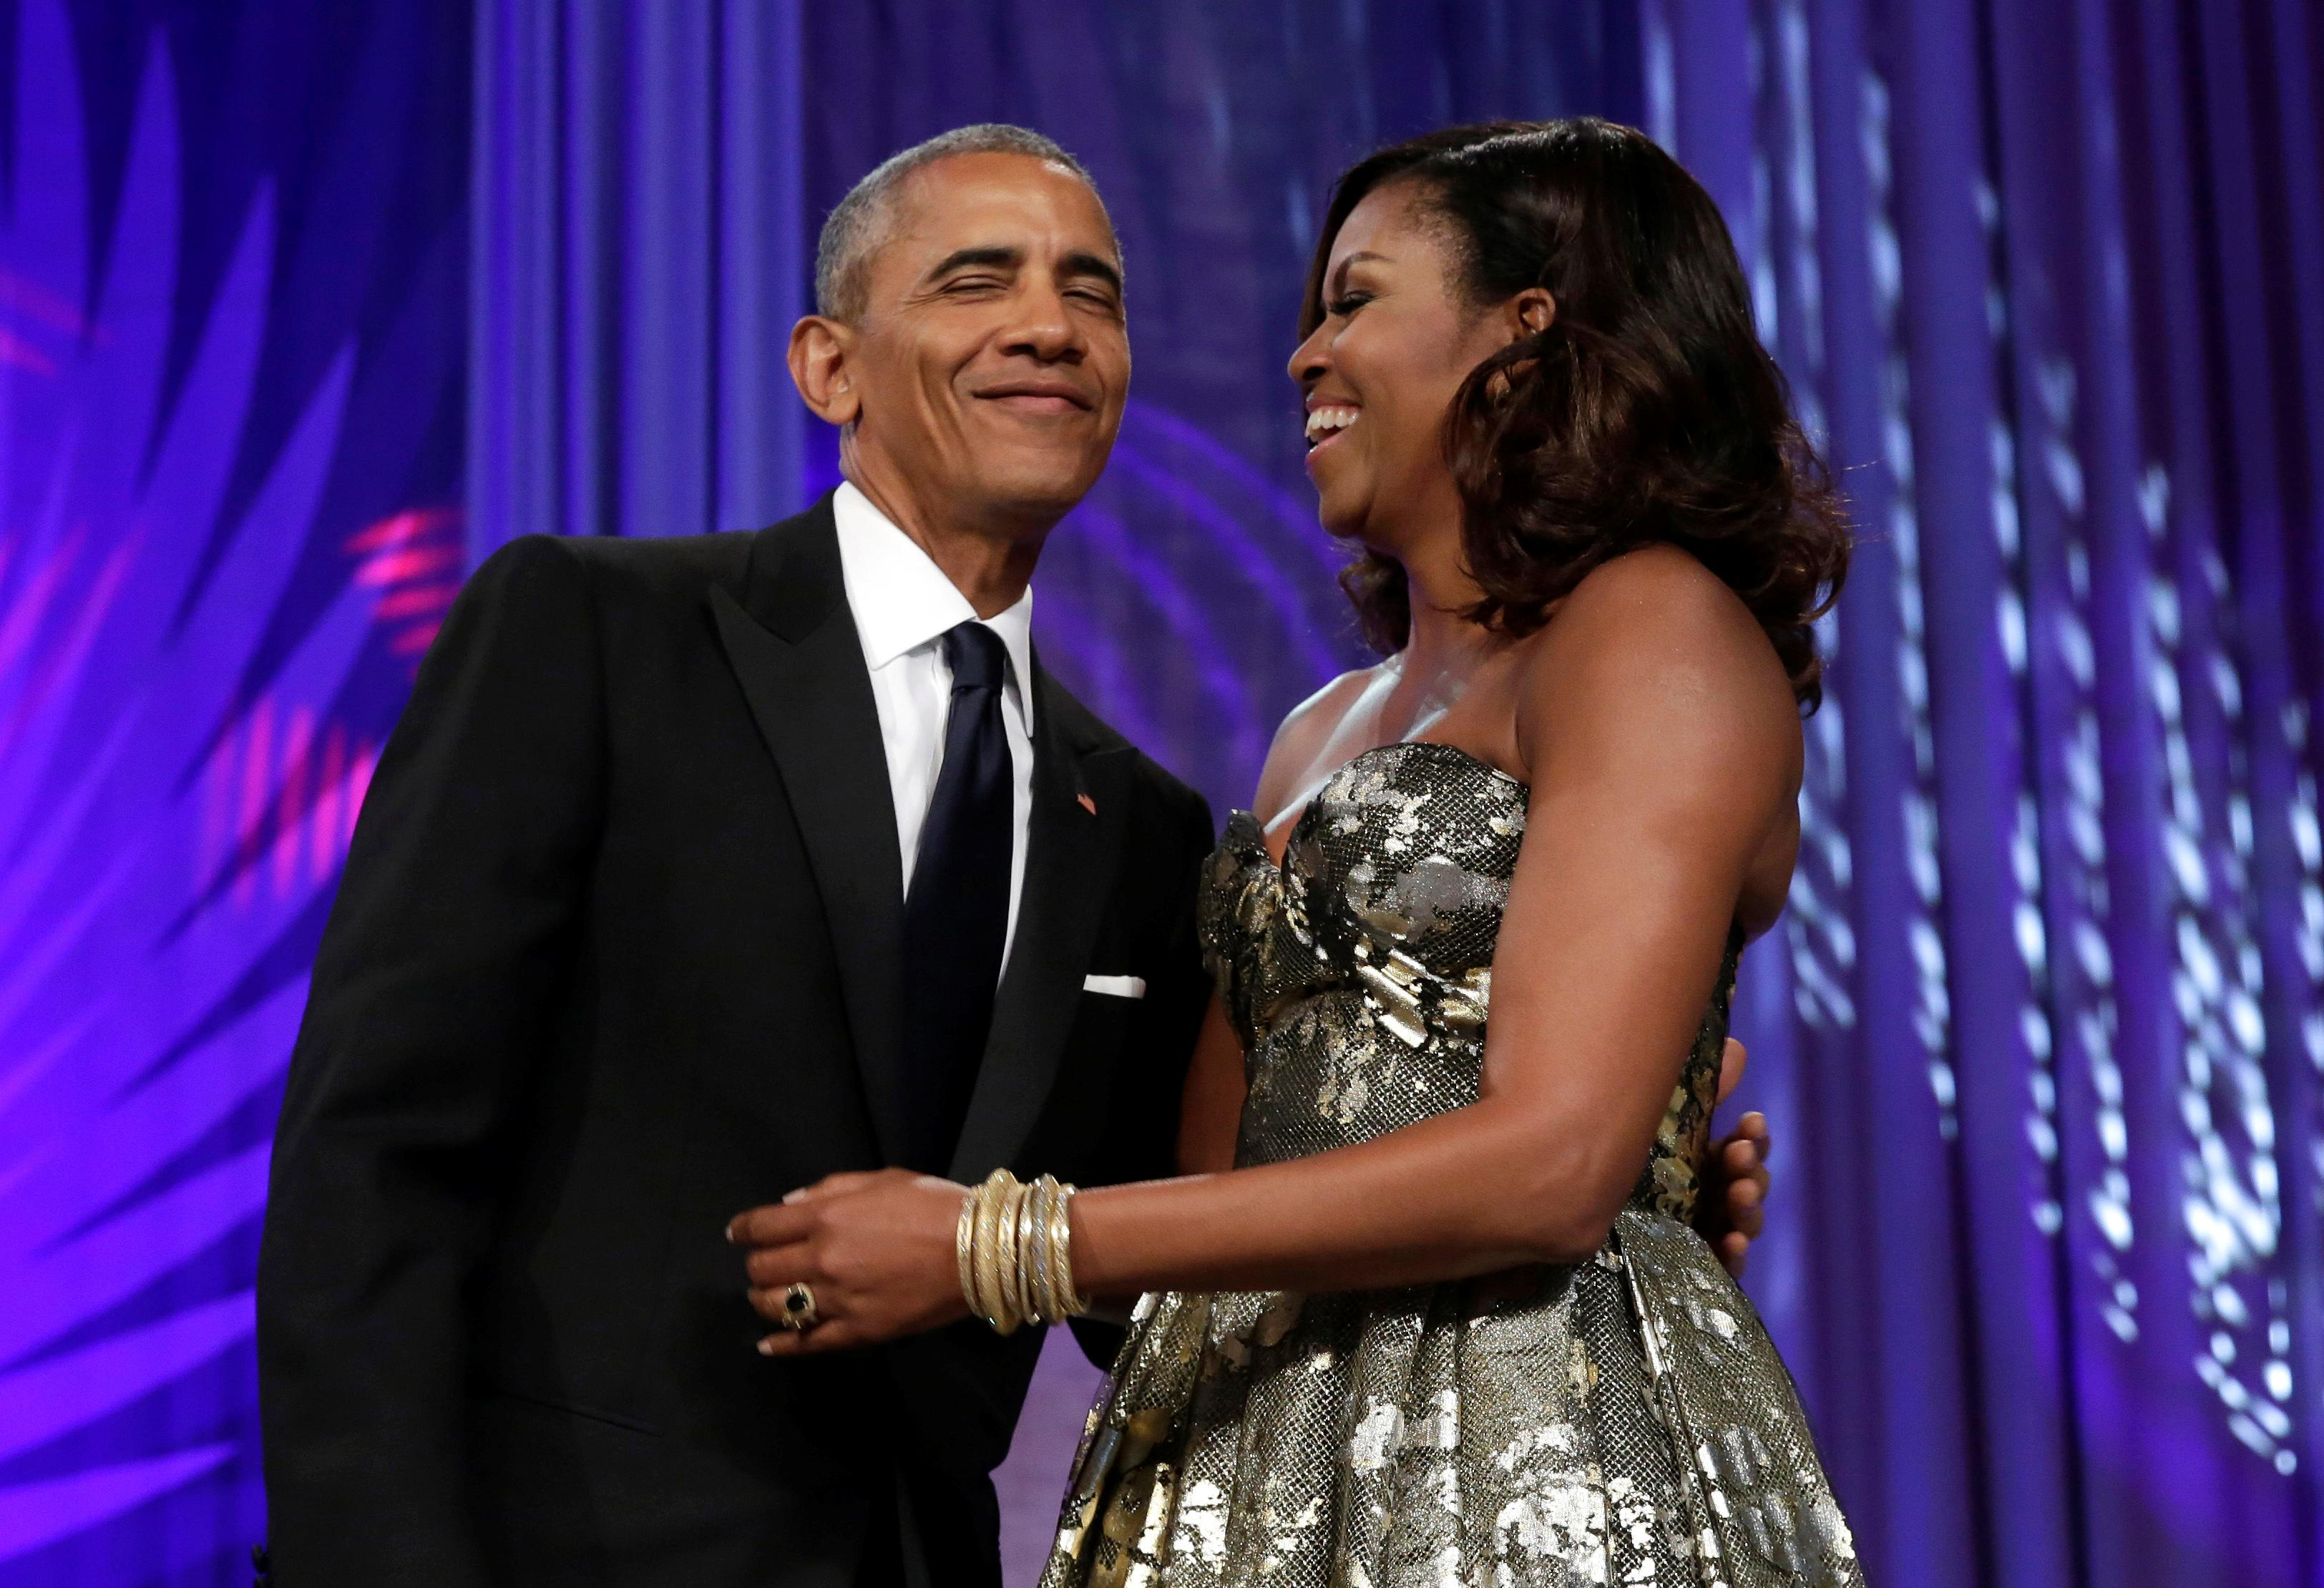 Best-Dressed List Honors Obamas, Snubs Trumps